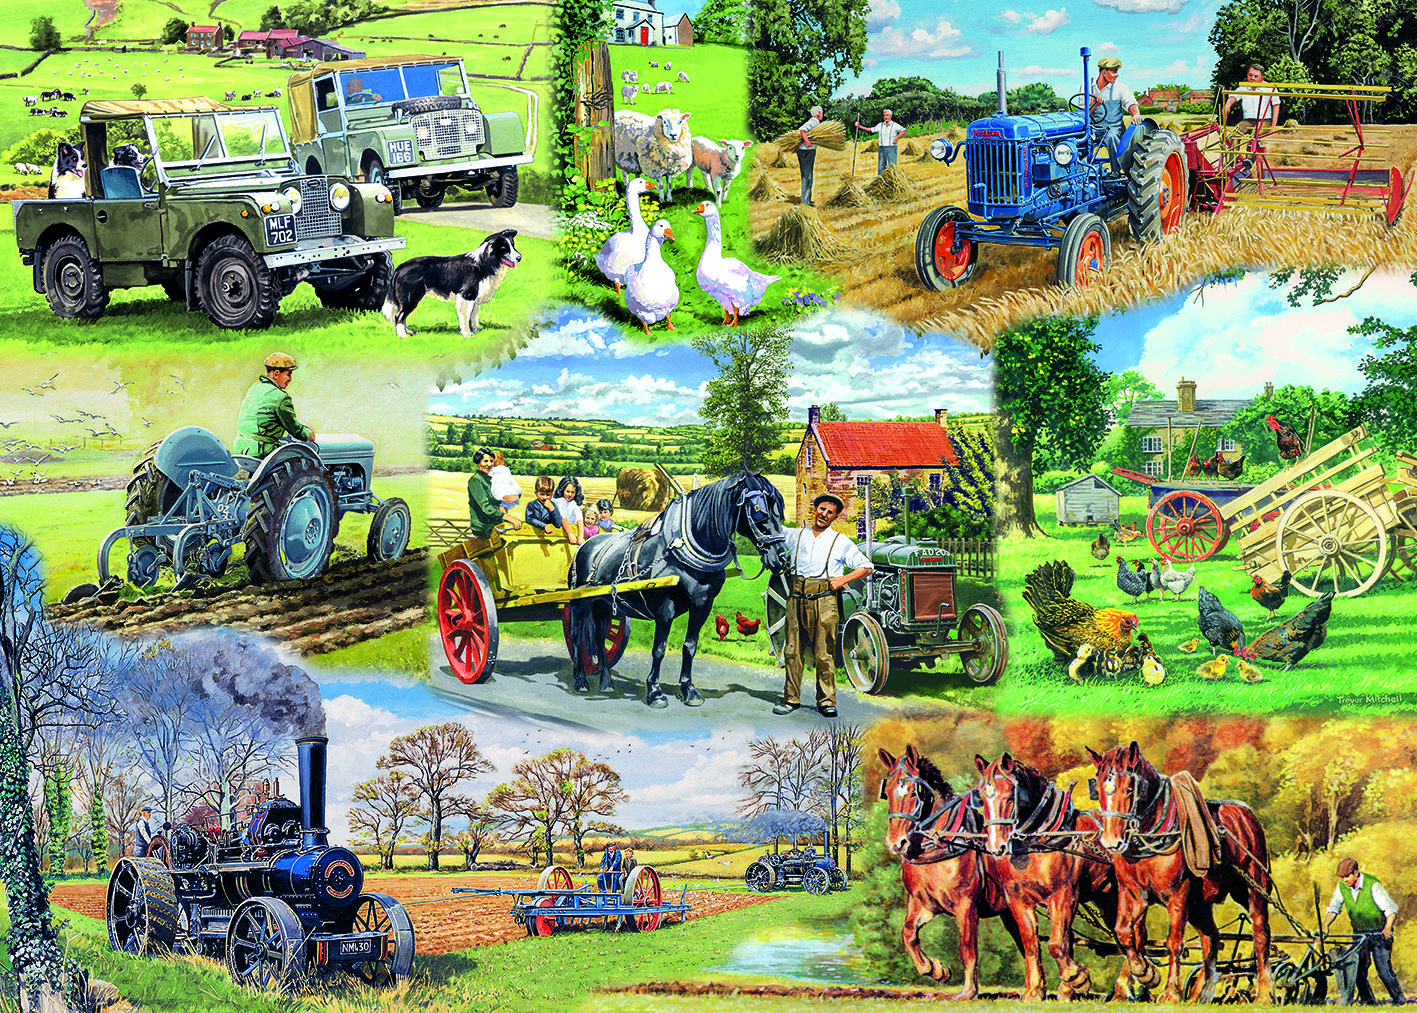 Farming Legends Puzzle  #jigsaw #puzzle #christmas #xmas #gifts #grandparents #children #fun #family #hobby #gibsons